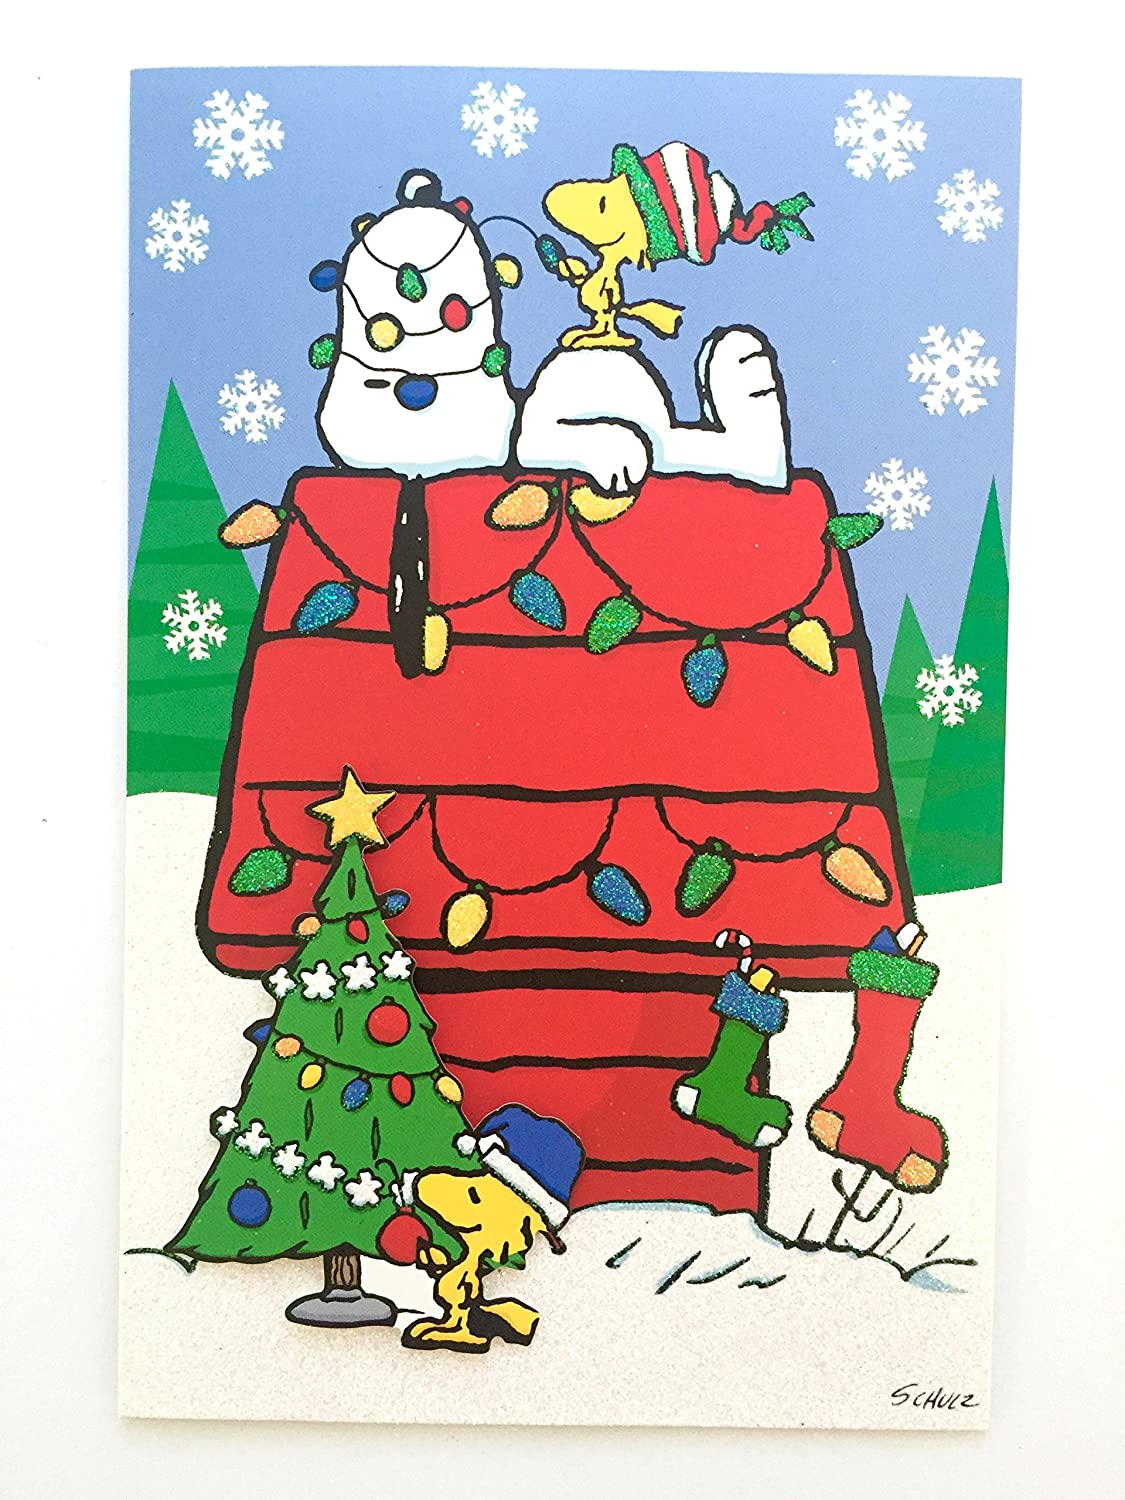 hallmark peanuts snoopy and woodstock holiday christmas cards box set of 18 with self sealing envelopes and 3 gift card holders amazoncouk office - Snoopy And Woodstock Christmas